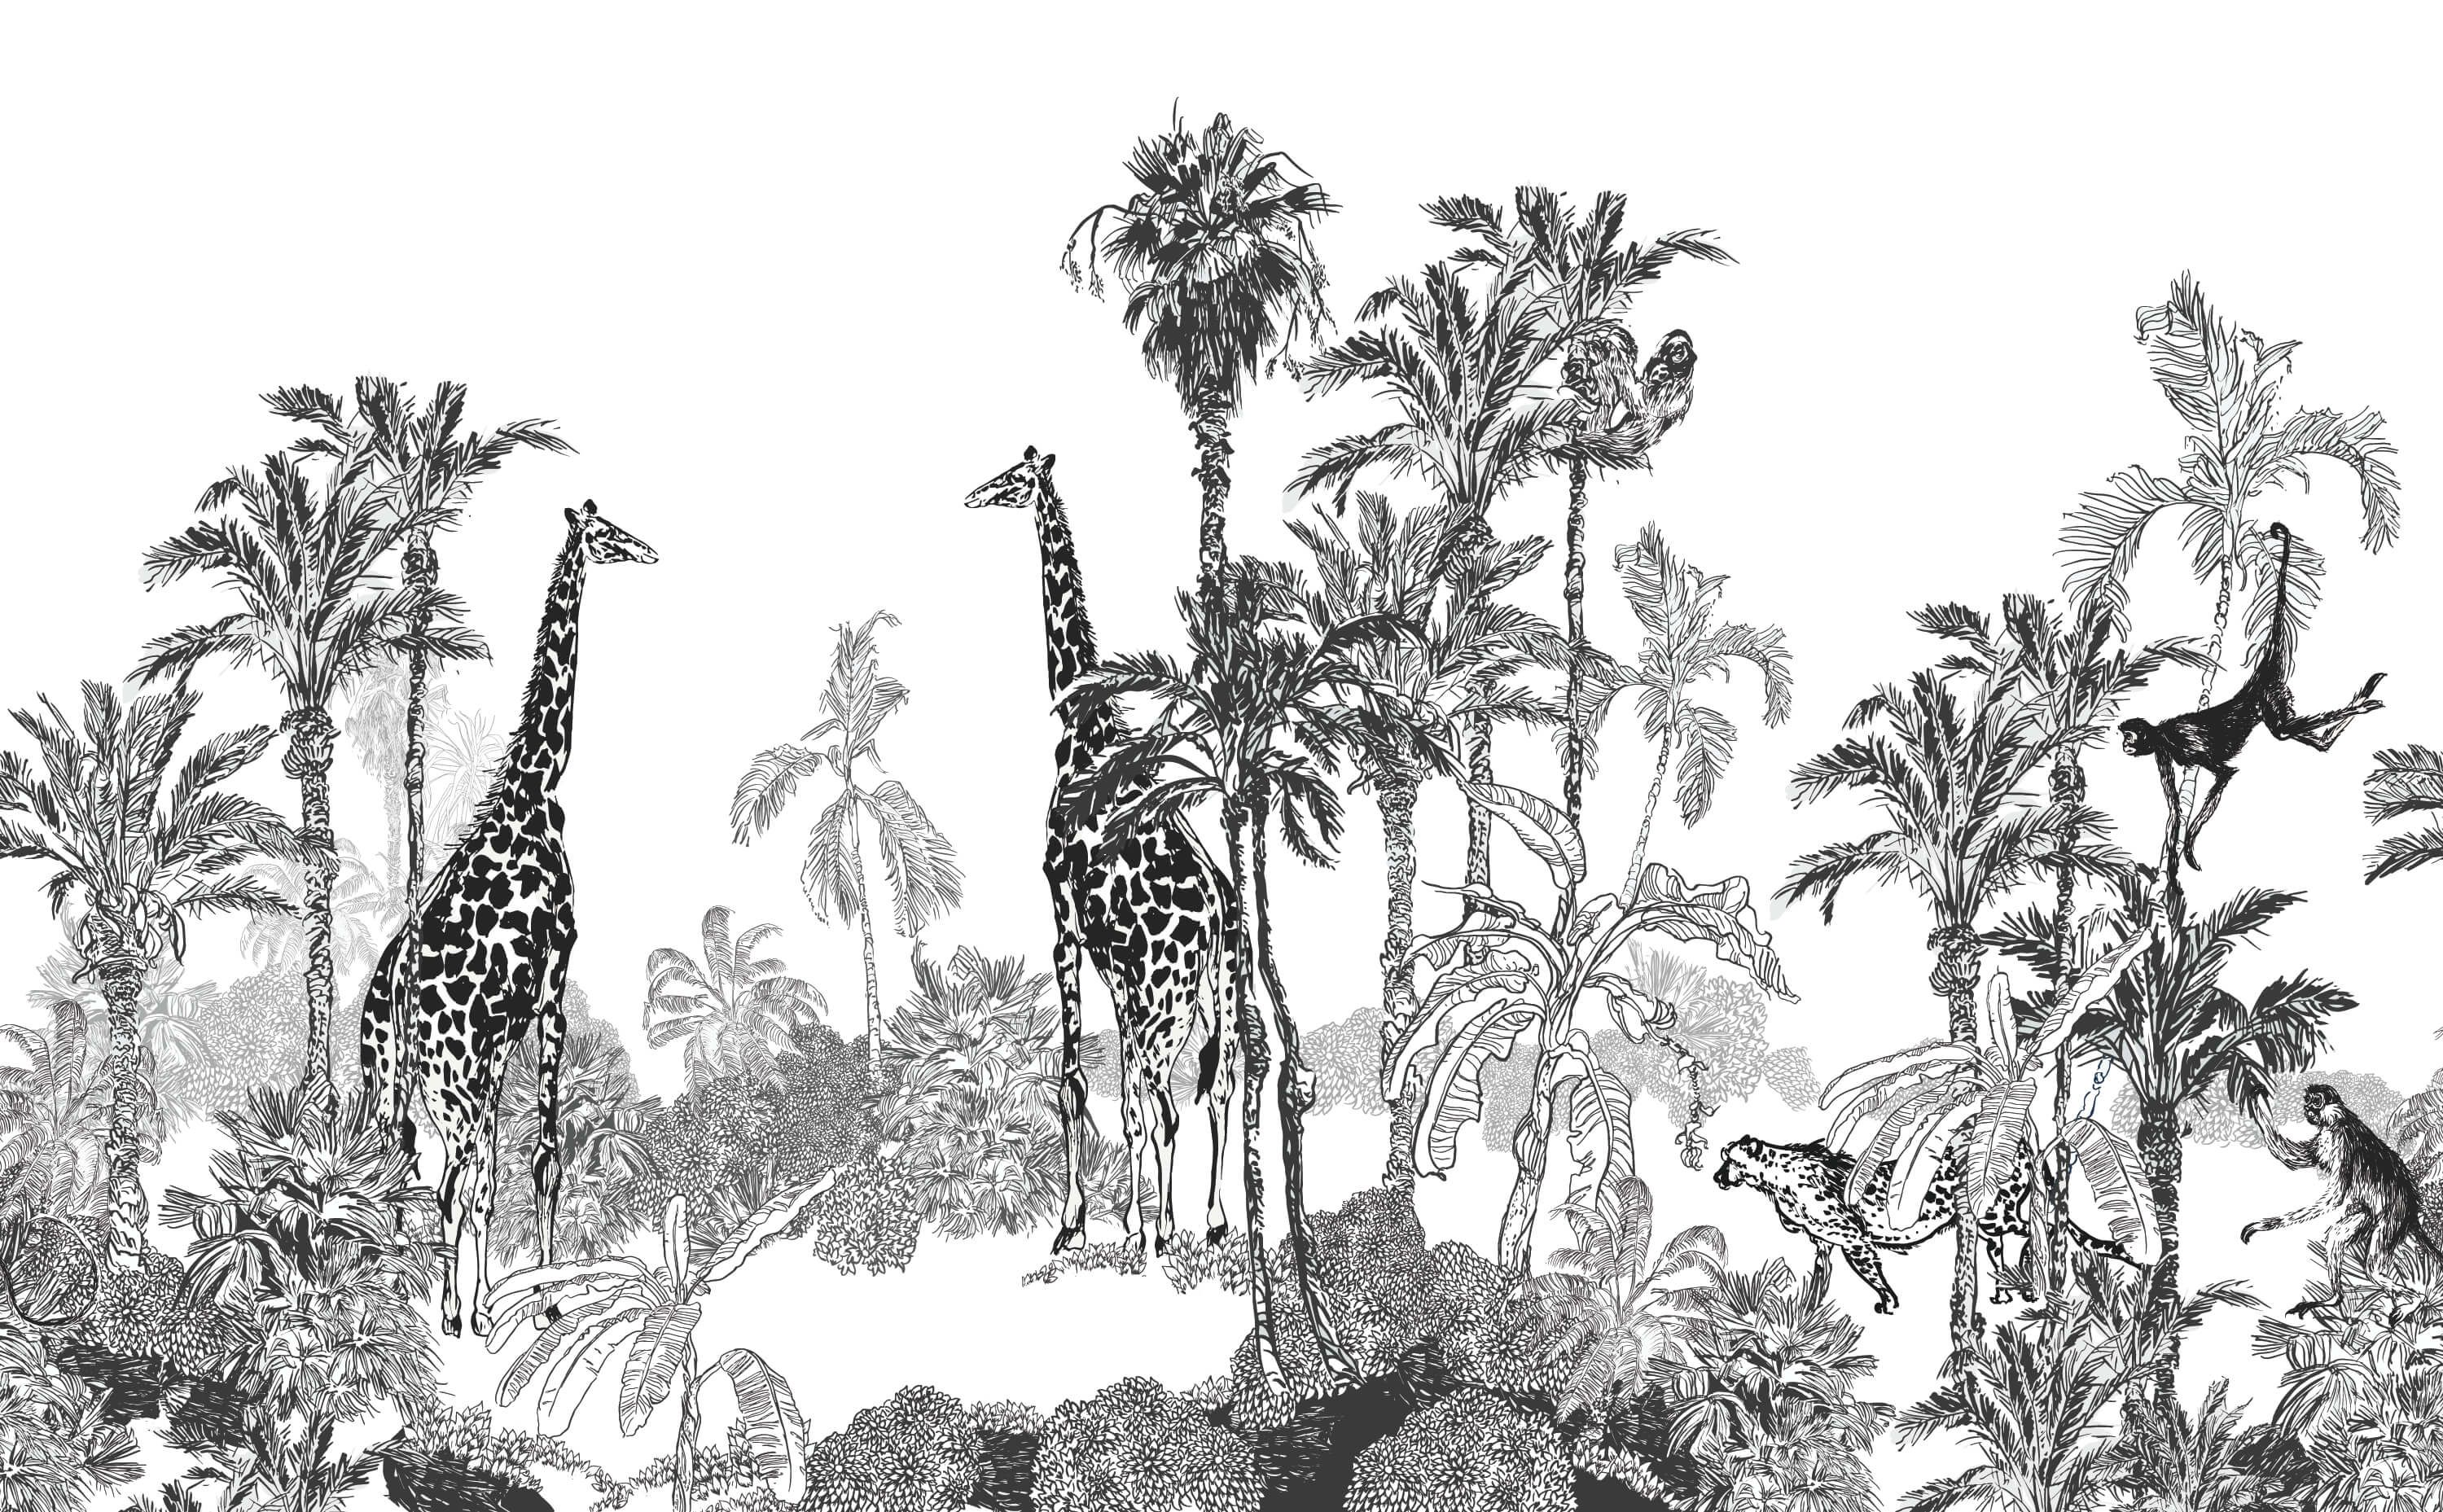 Sketched animals in the jungle